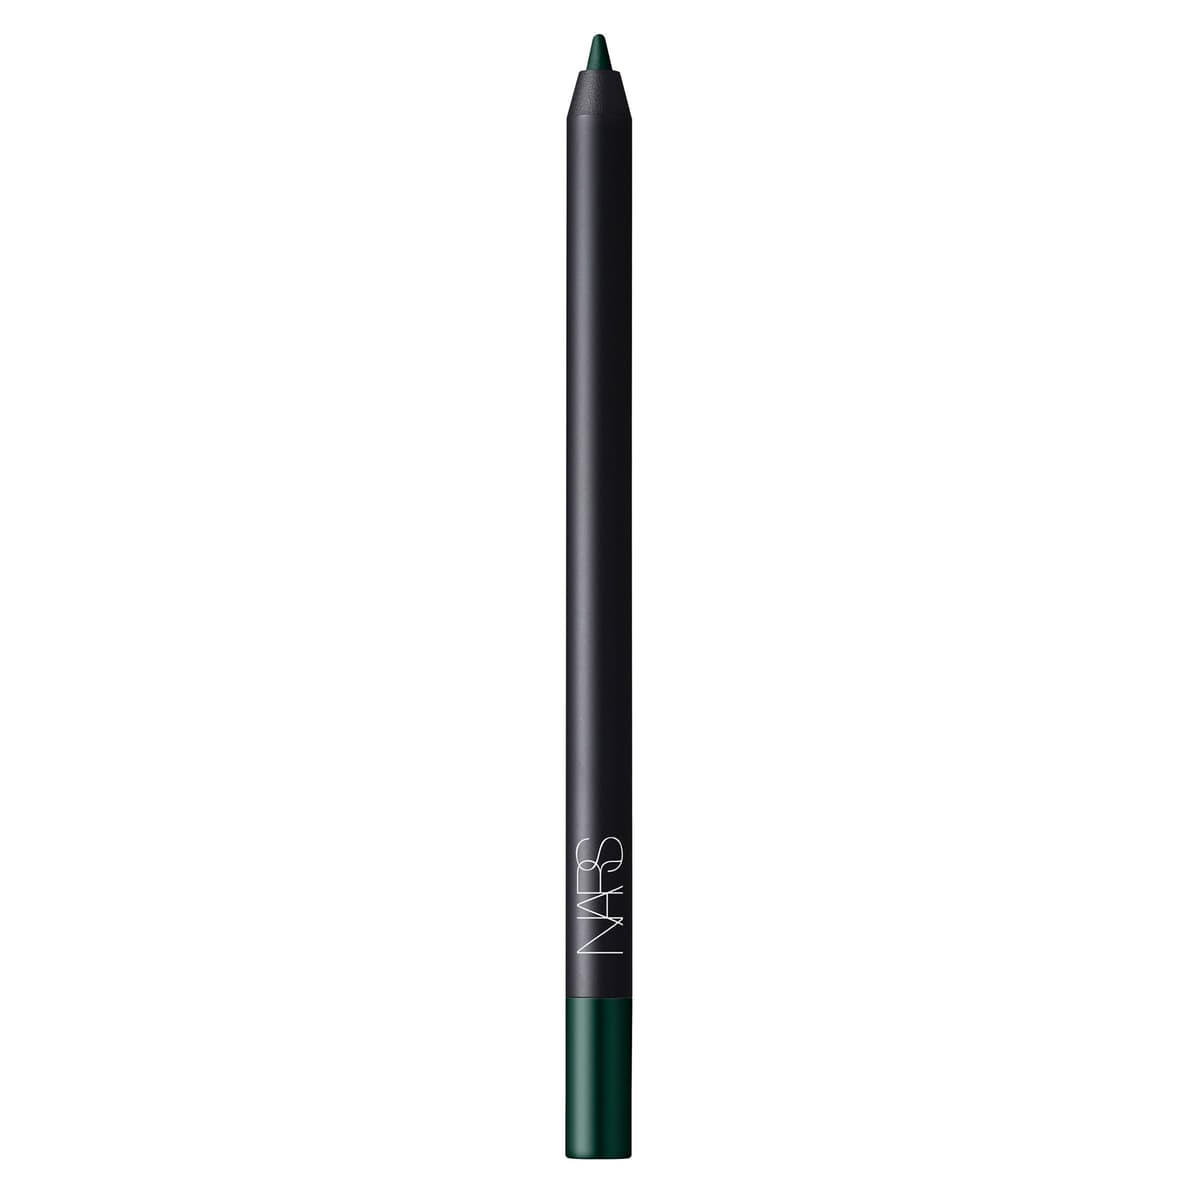 NARS Larger Than Life Long-Wear Eye Liner Grafton Street